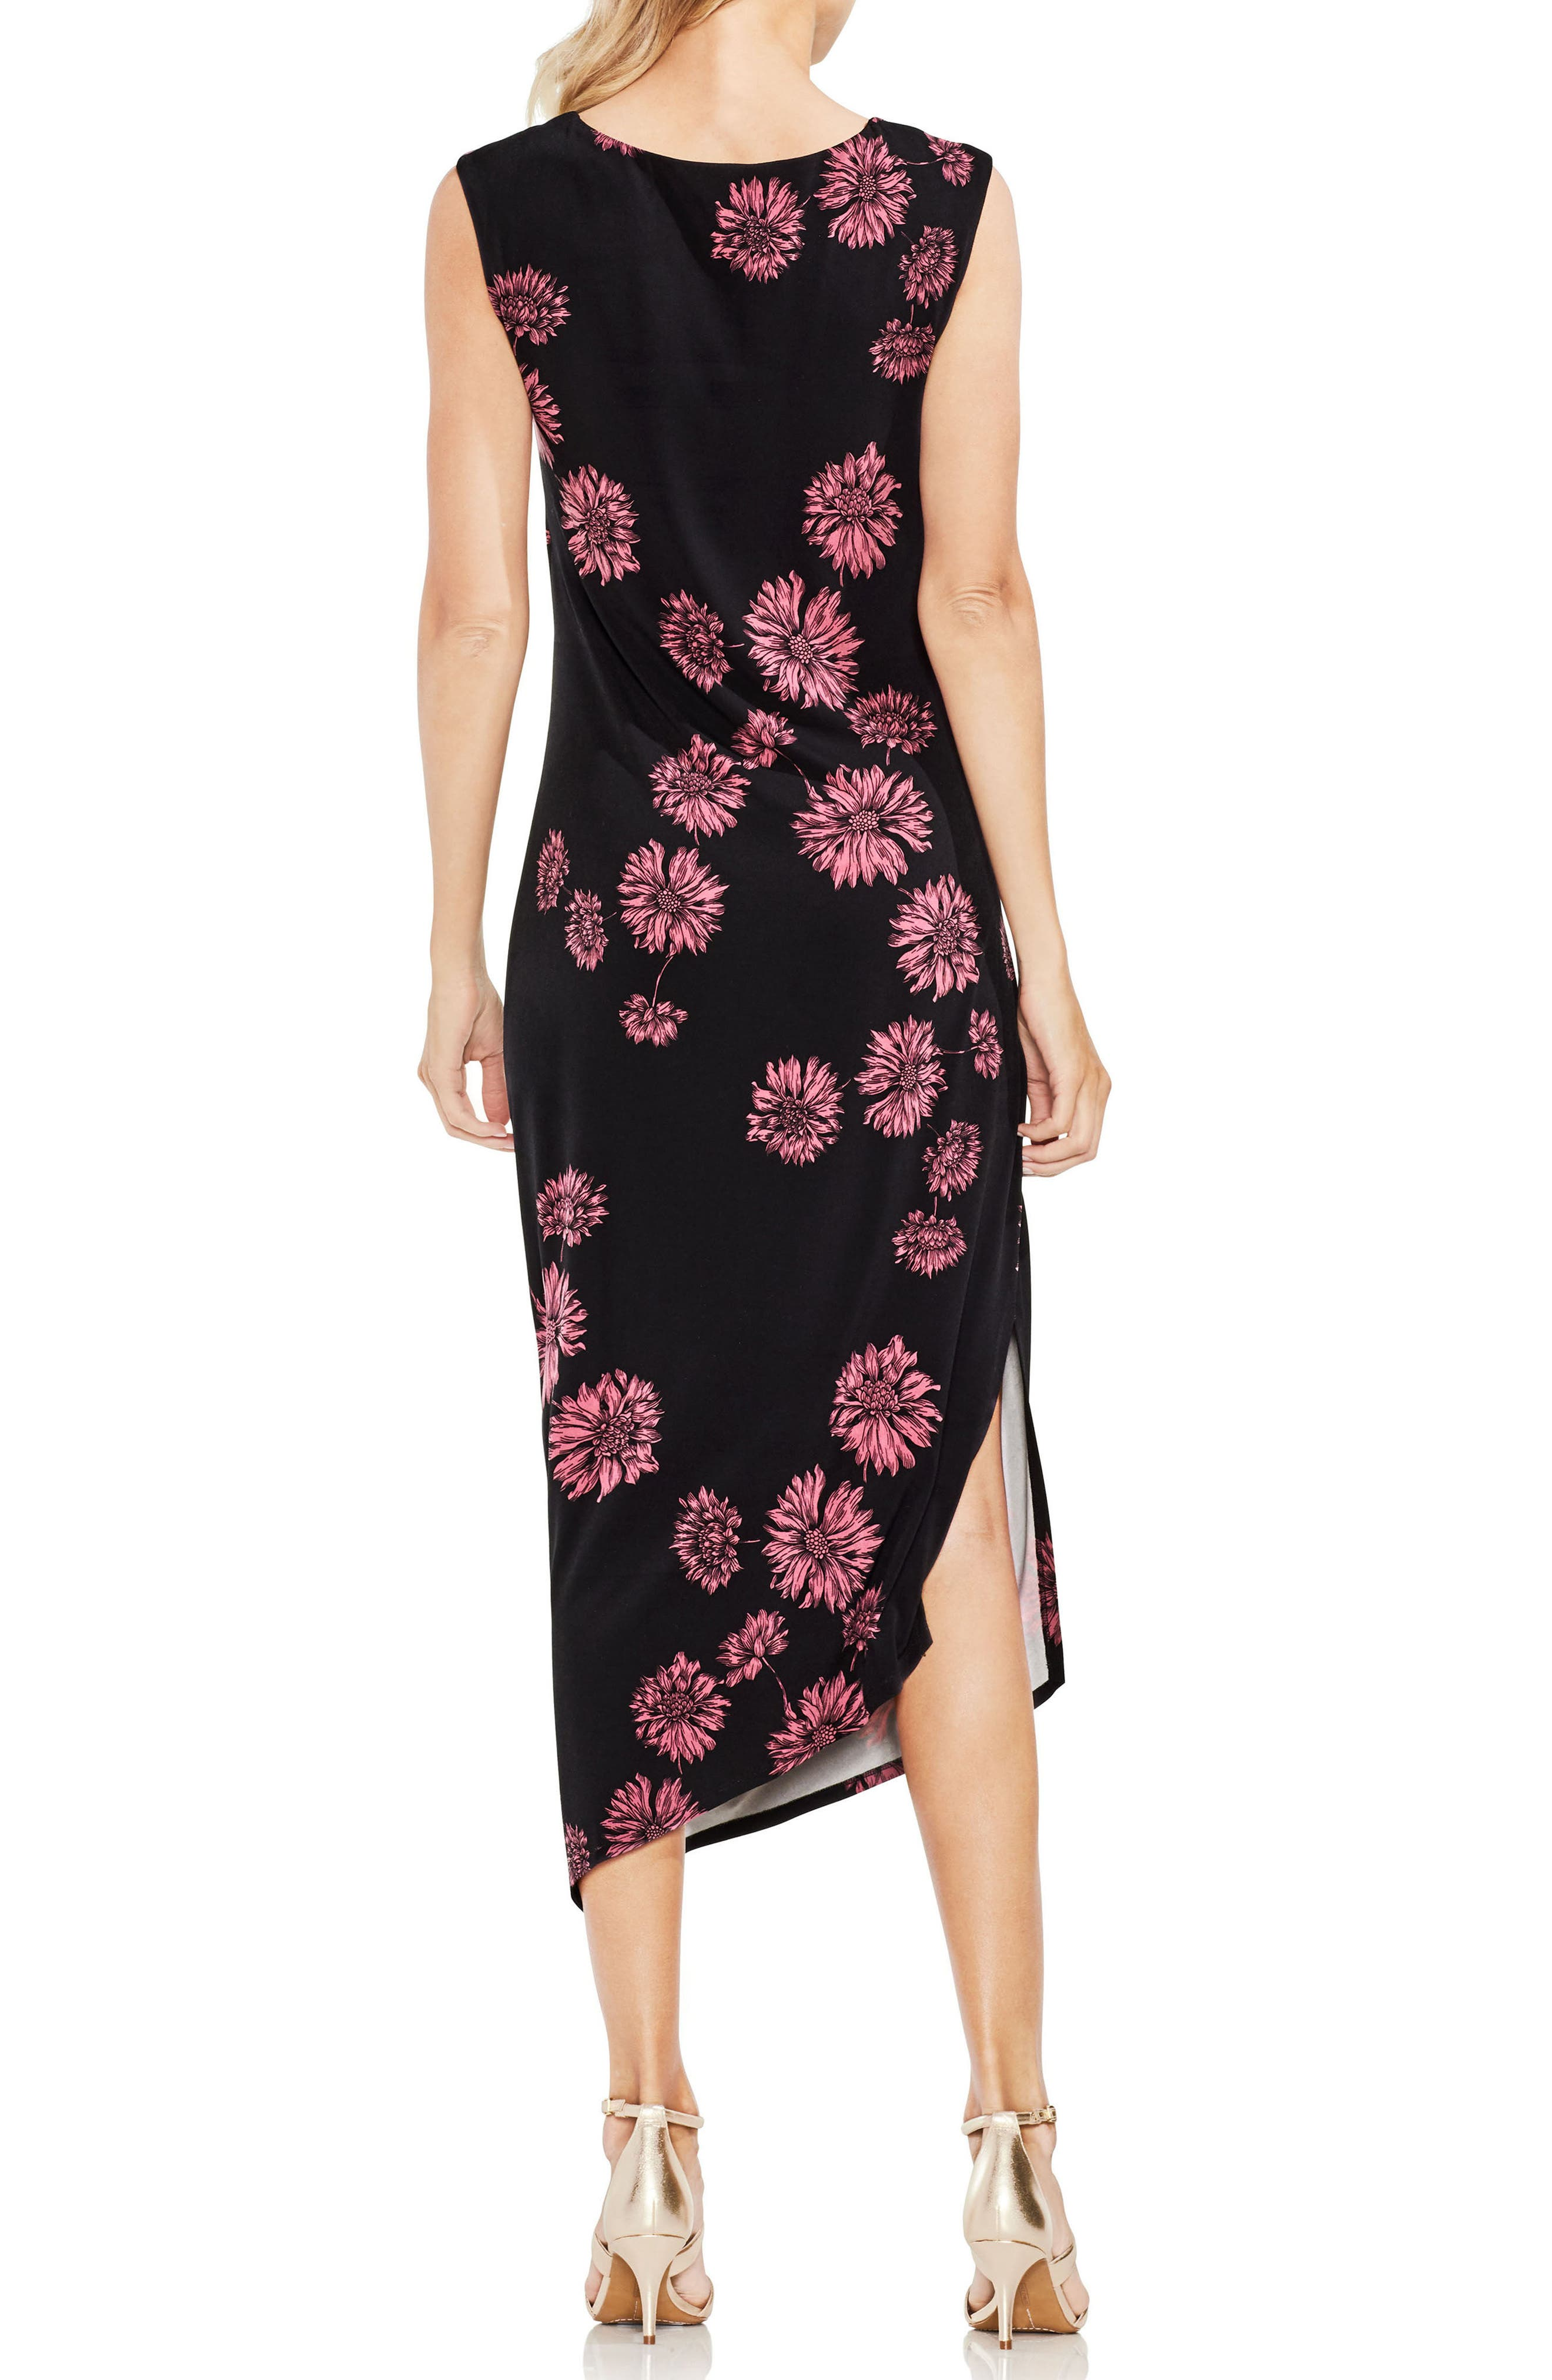 VINCE CAMUTO,                             Chateau Floral Side Ruched Body-Con Dress,                             Alternate thumbnail 2, color,                             001